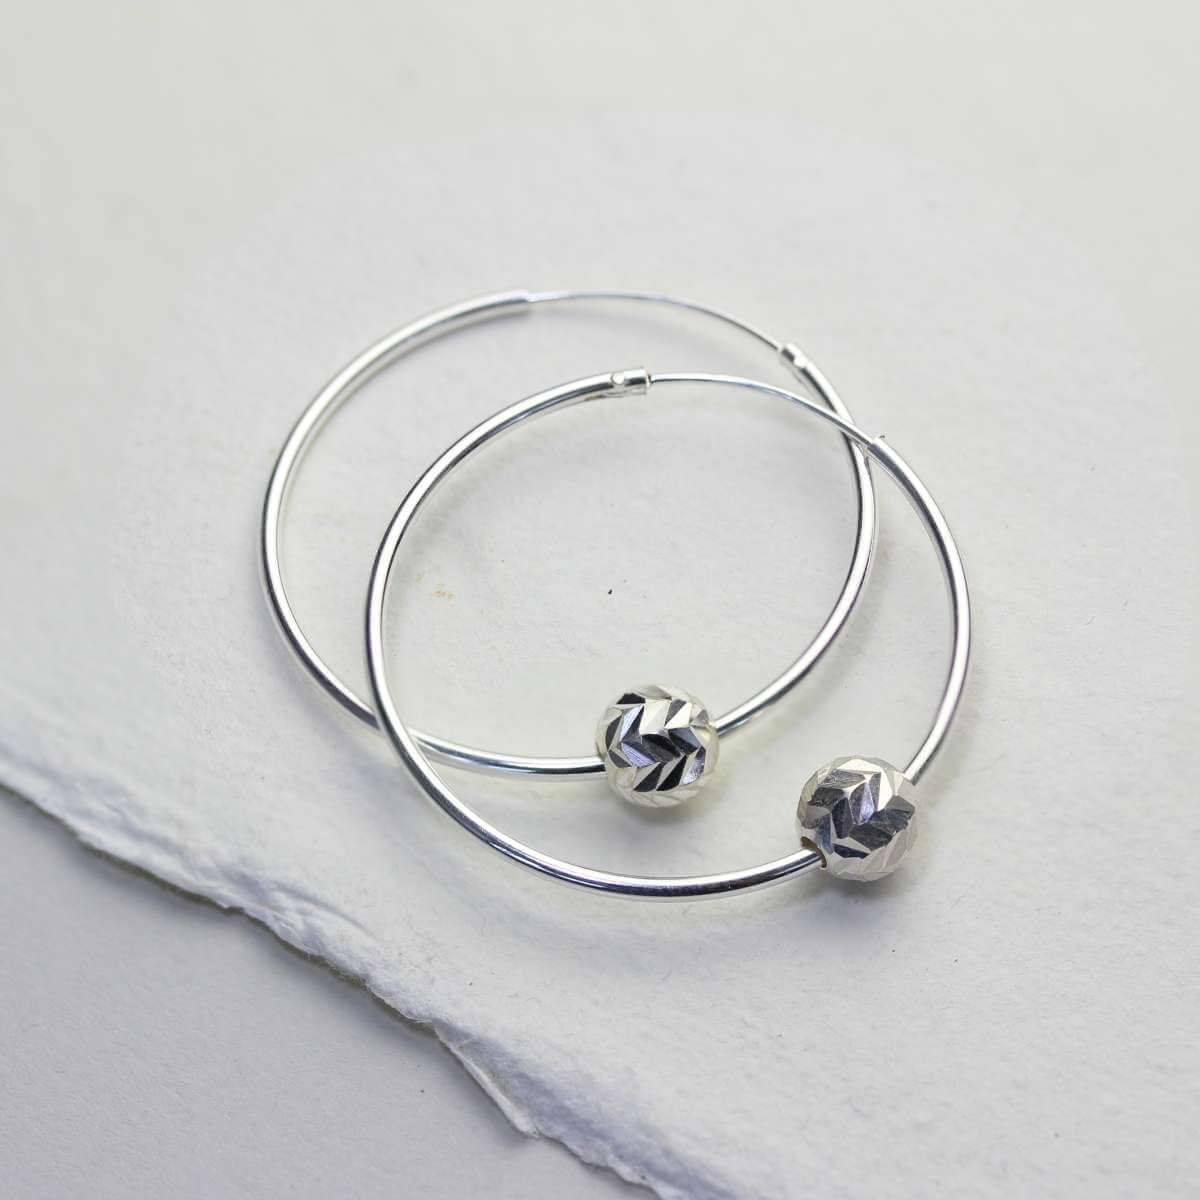 Sterling Silver 22mm Hoop Earrings with Chevron Cut Ball Beads